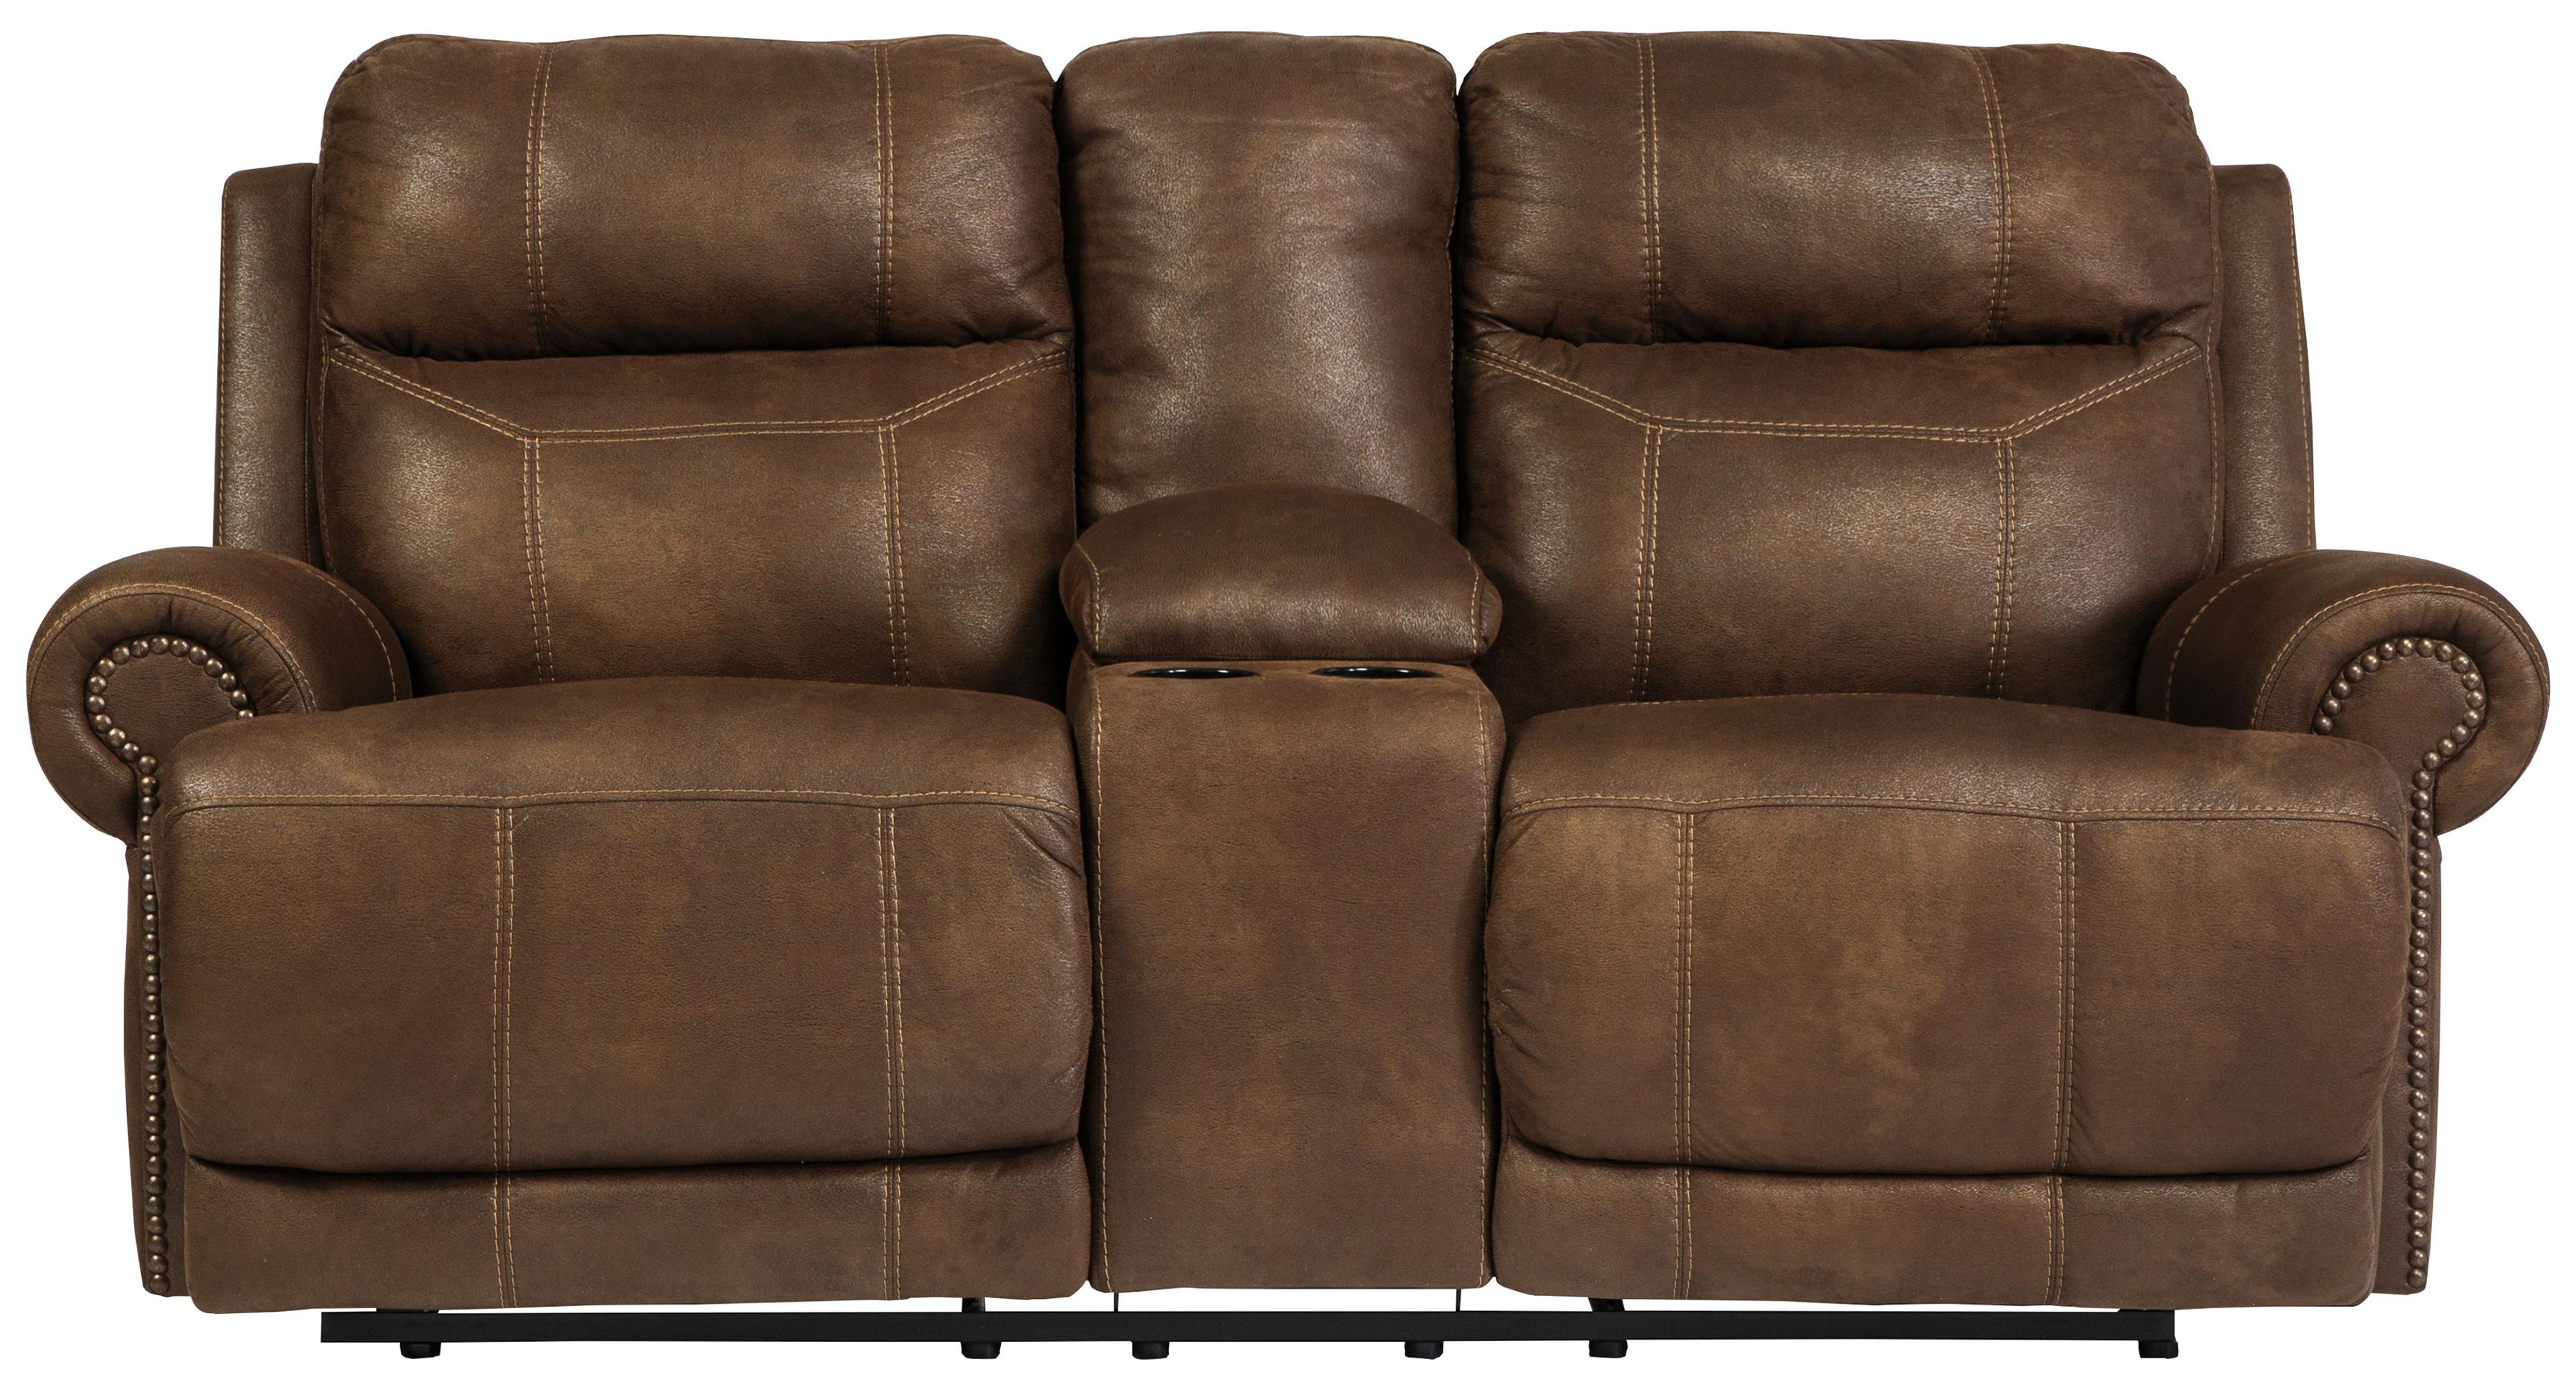 Austere - Brown Double Reclining Loveseat w/ Console by Signature Design by Ashley at Zak's Warehouse Clearance Center